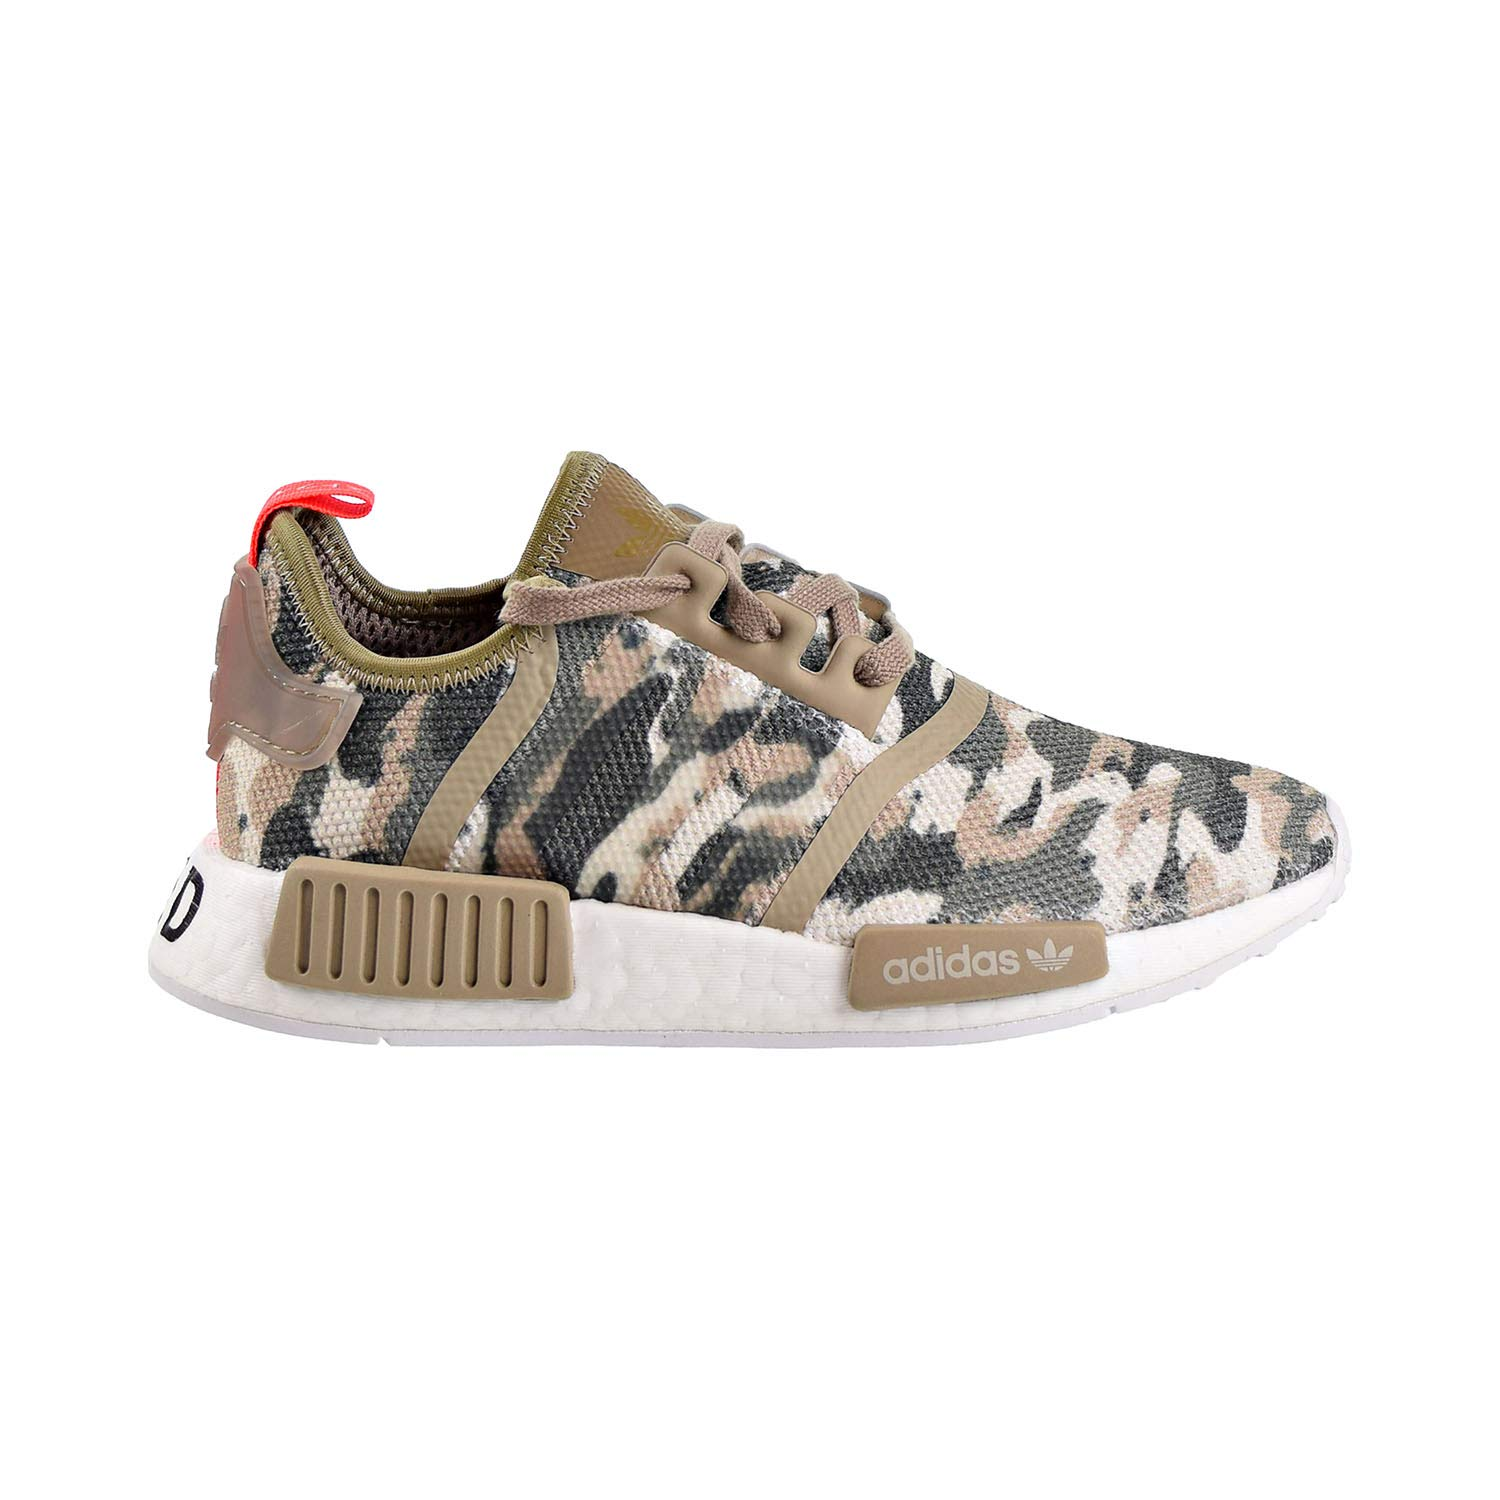 d7a9b448f5 Amazon.com | adidas NMD_R1 Big Kids Shoes Clear Brown/Solar Red ...